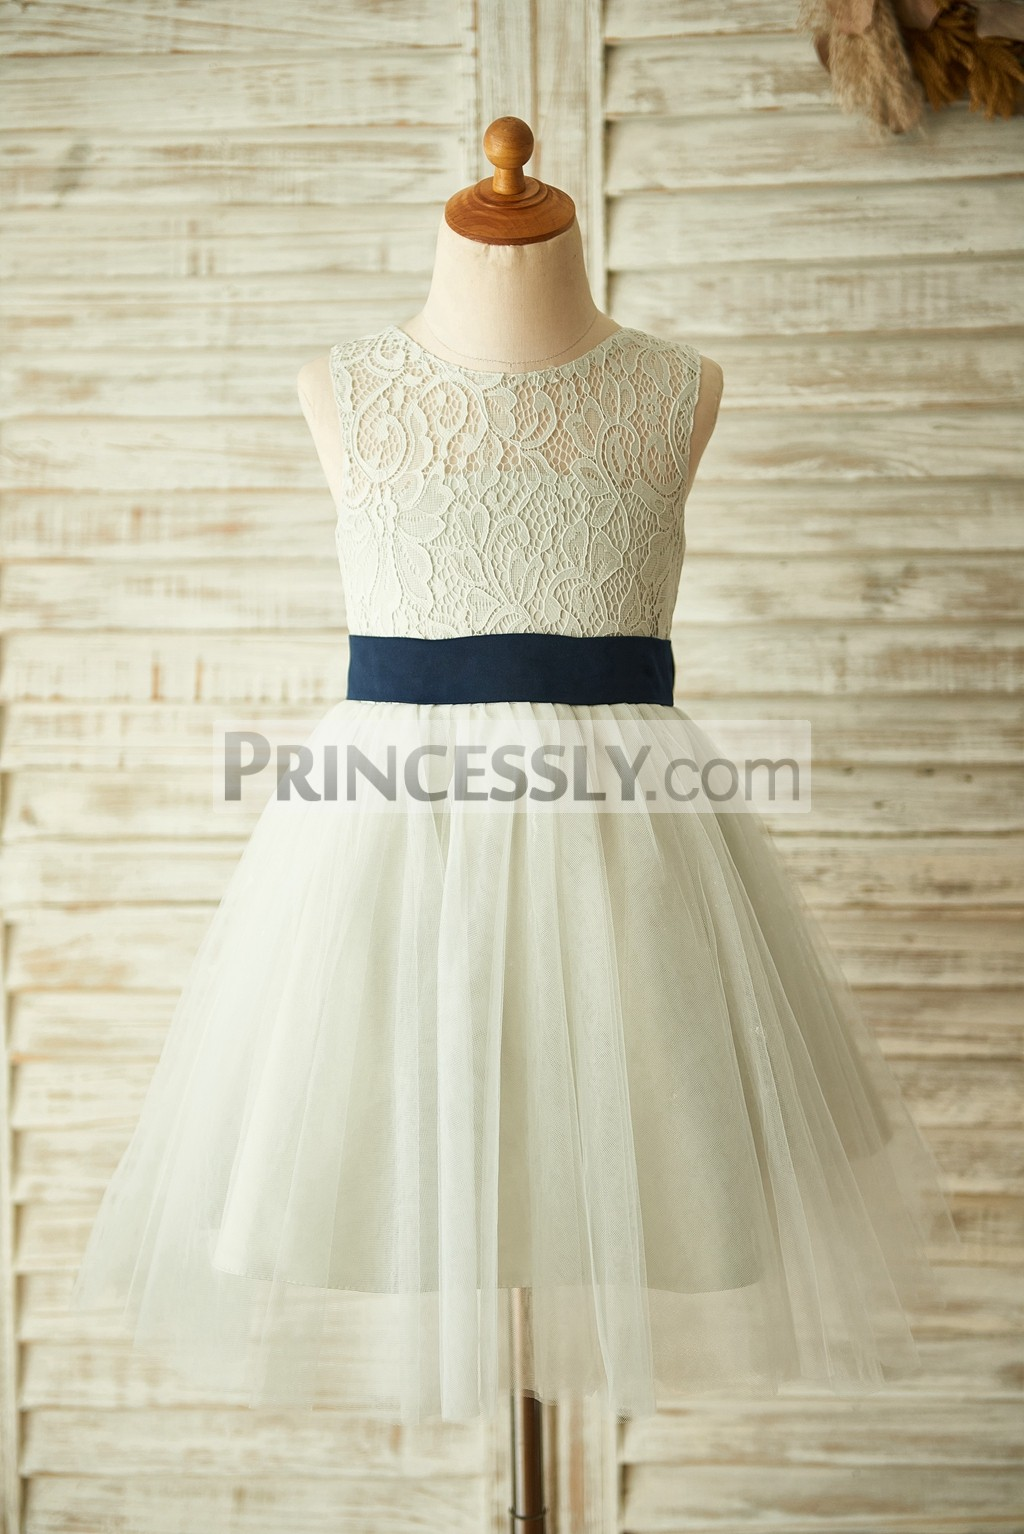 Silver gray lace tulle flower girl dress with navy blue belt